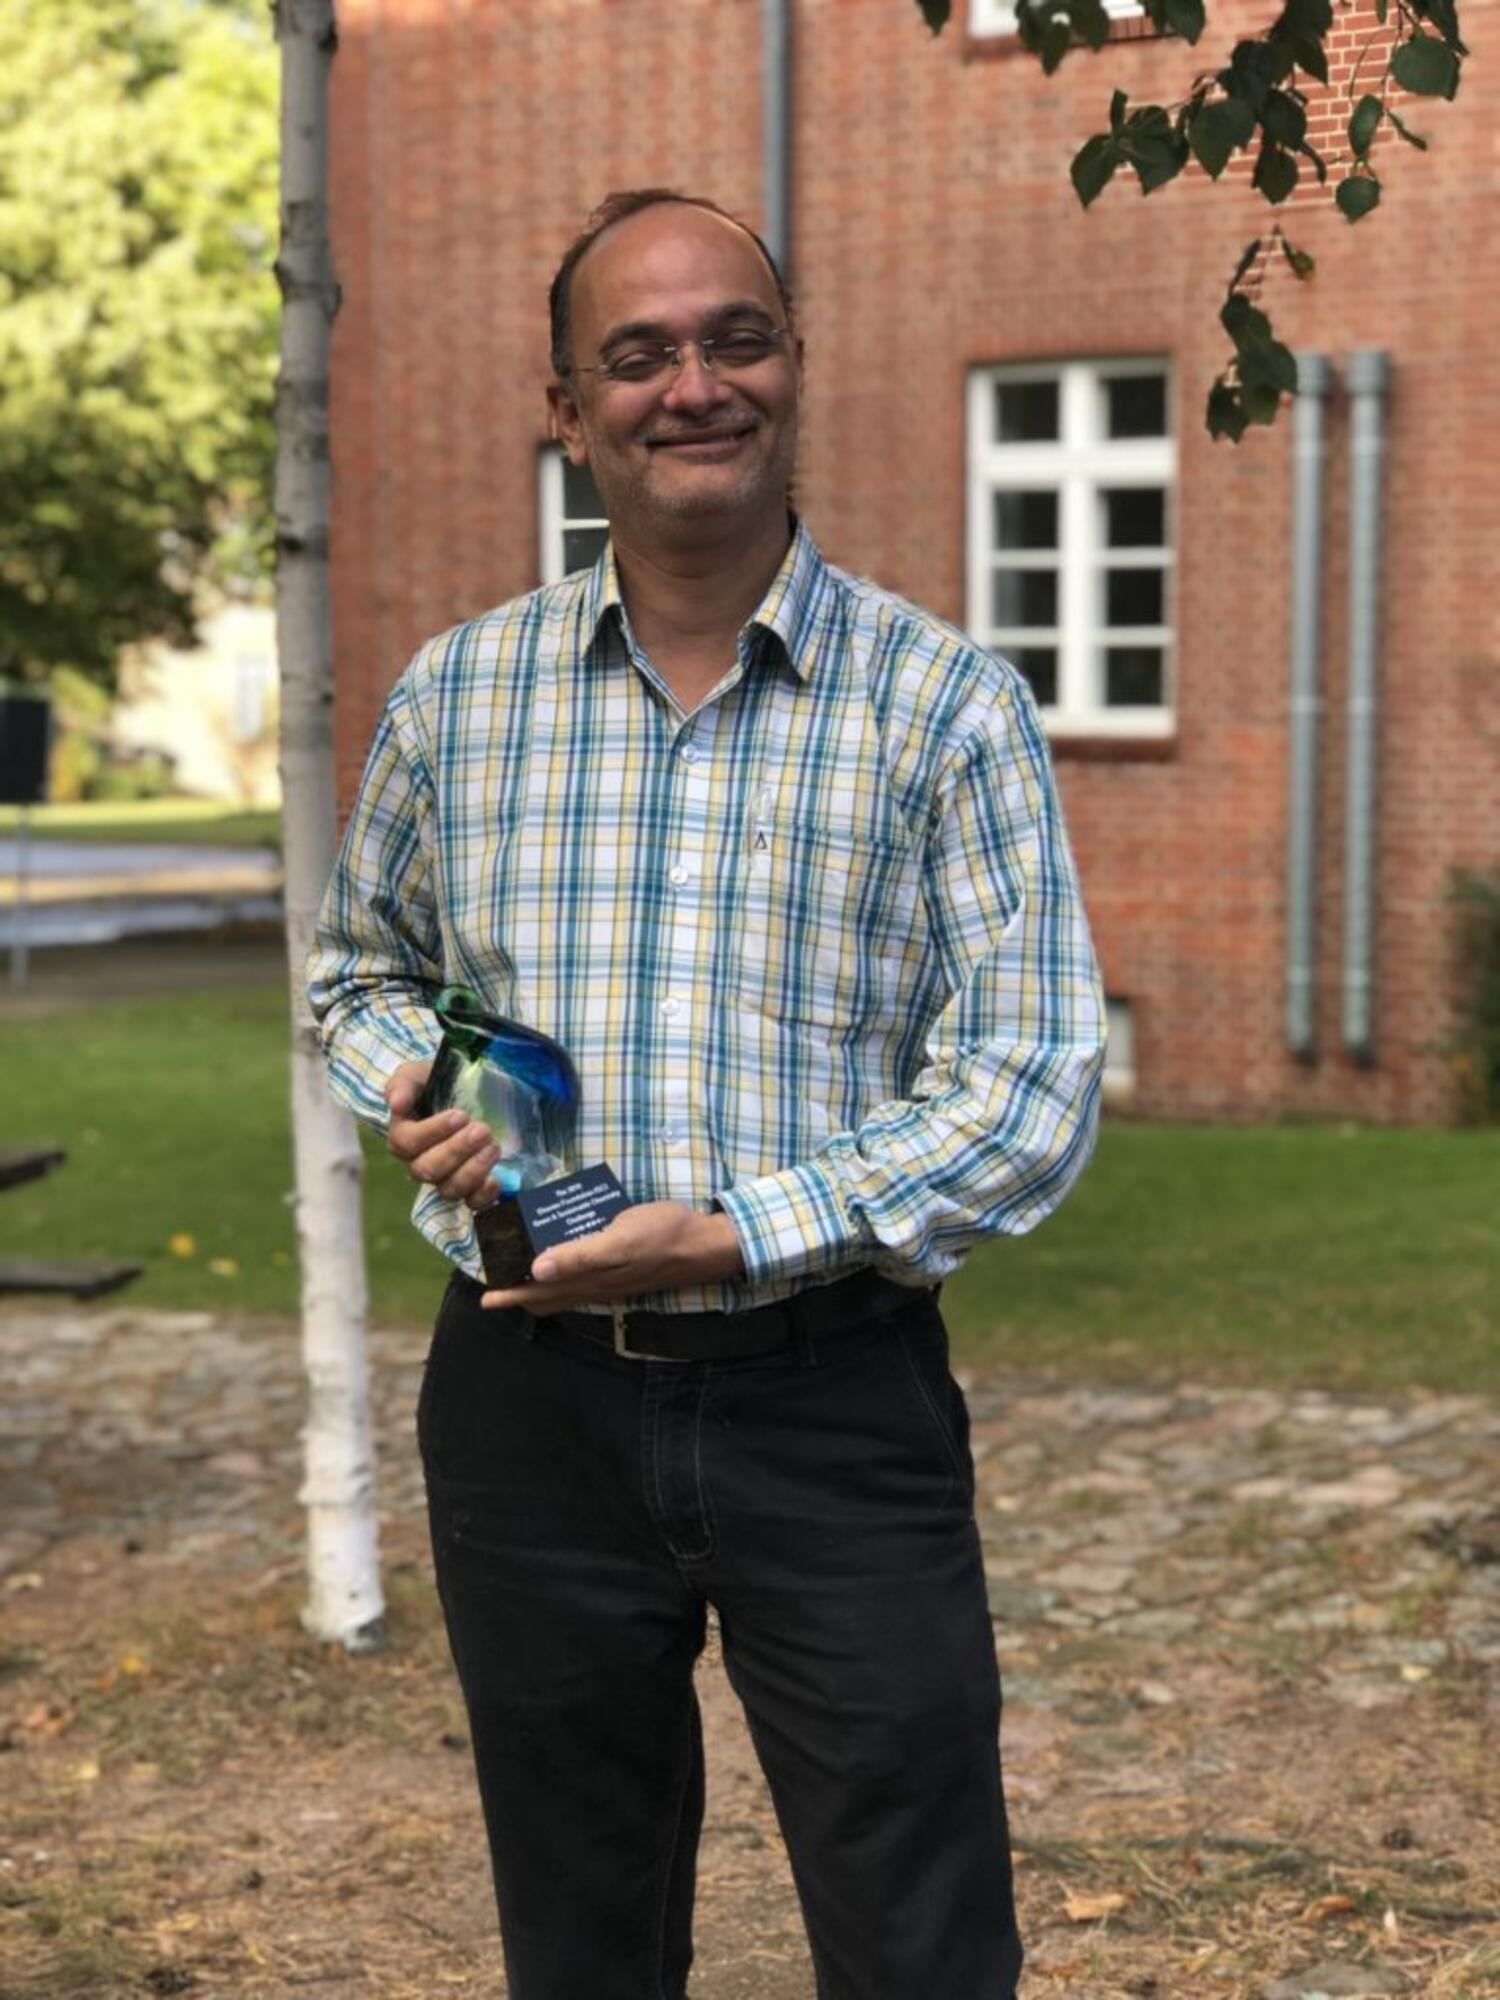 2019 Elsevier Foundation Green and Sustainable Chemistry Challenge second prize winner, Dr. Ankur Patwardhan